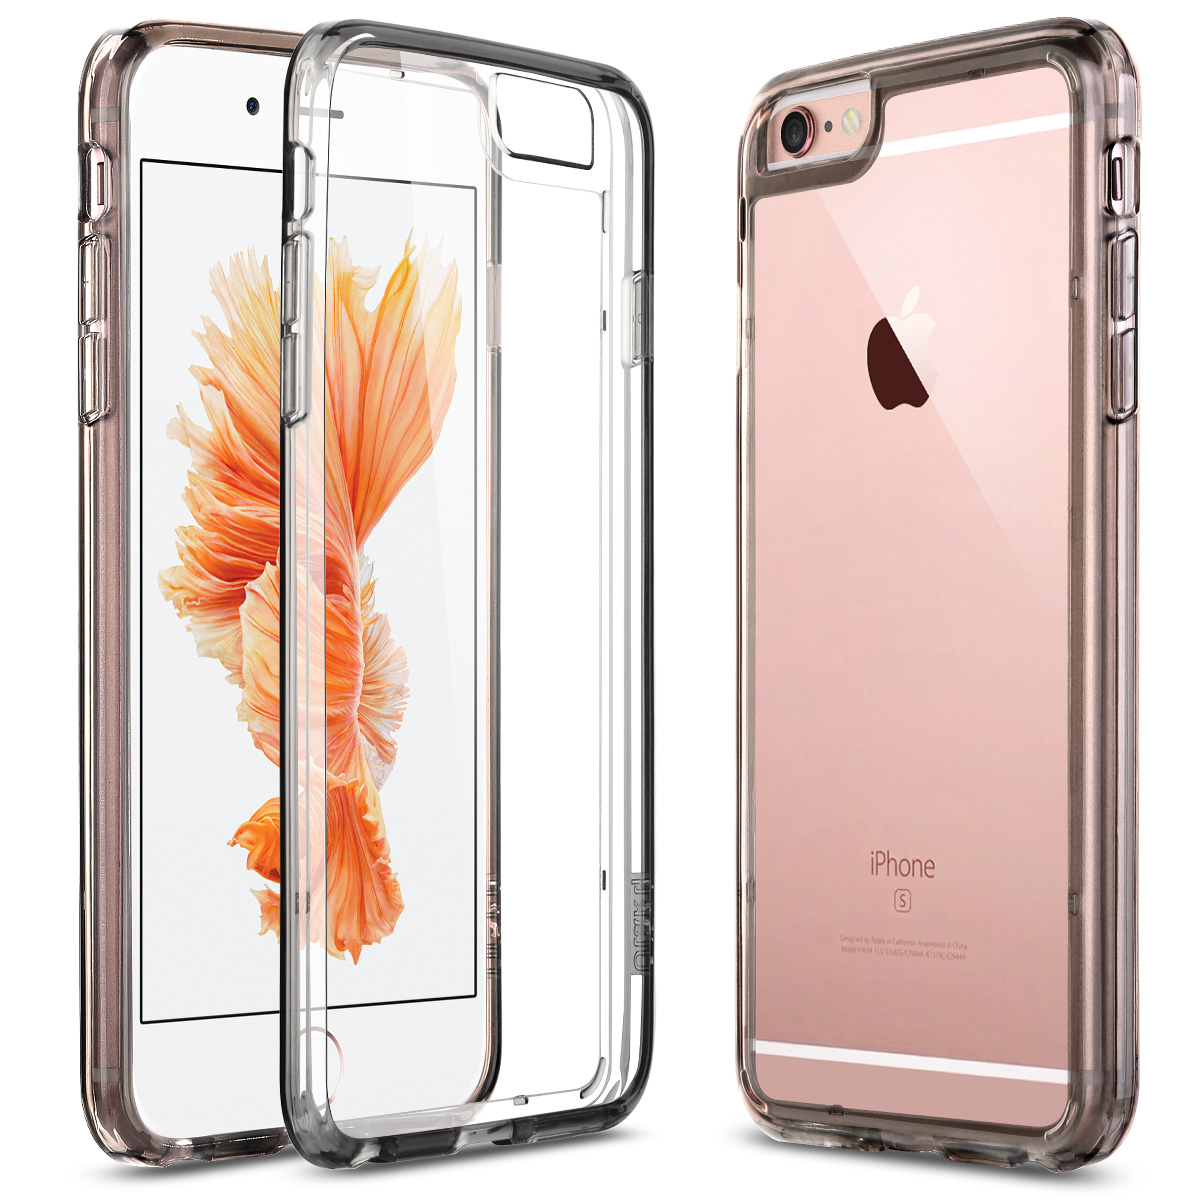 Apple iPhone 6 6S Plus 5.5 Case, ULAK [CLEAR SLIM] iPhone 6 Plus Clear Case Cover Bumber Hard for Apple iPhone 6 6S Plus 5.5 Inch - Walmart.com